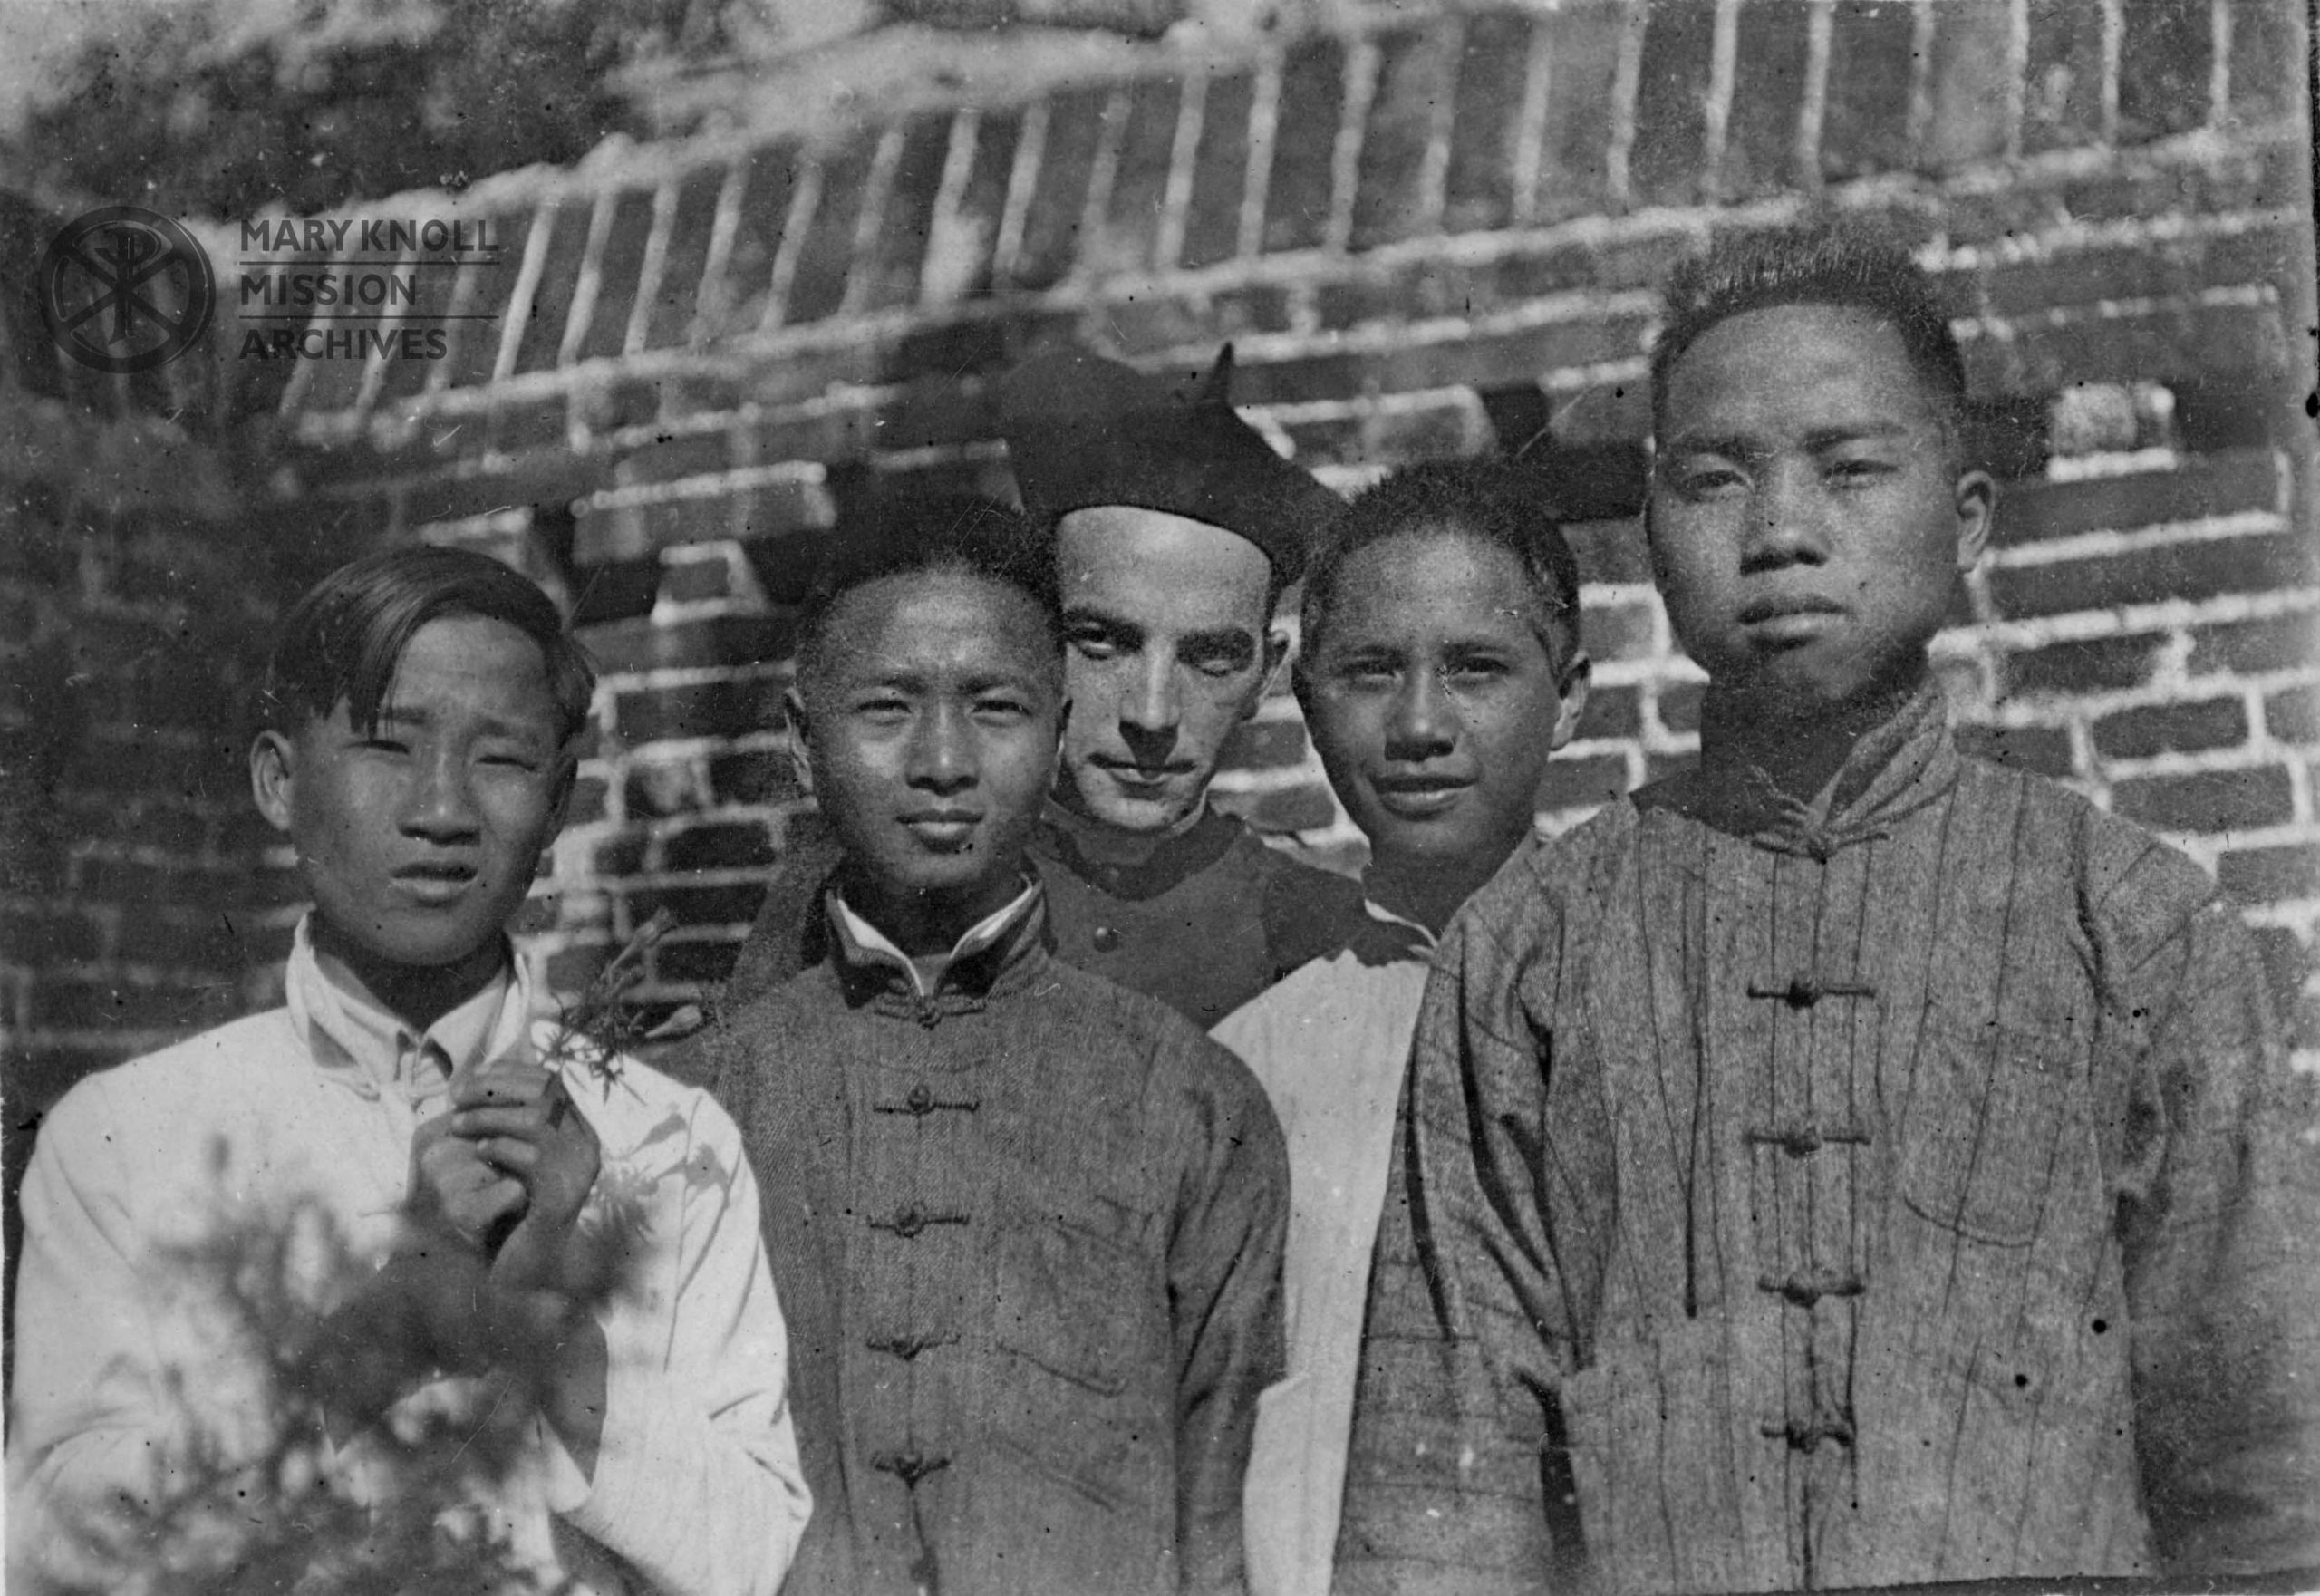 Fr. Francis Ford with religion students in Yeungkong, 1922